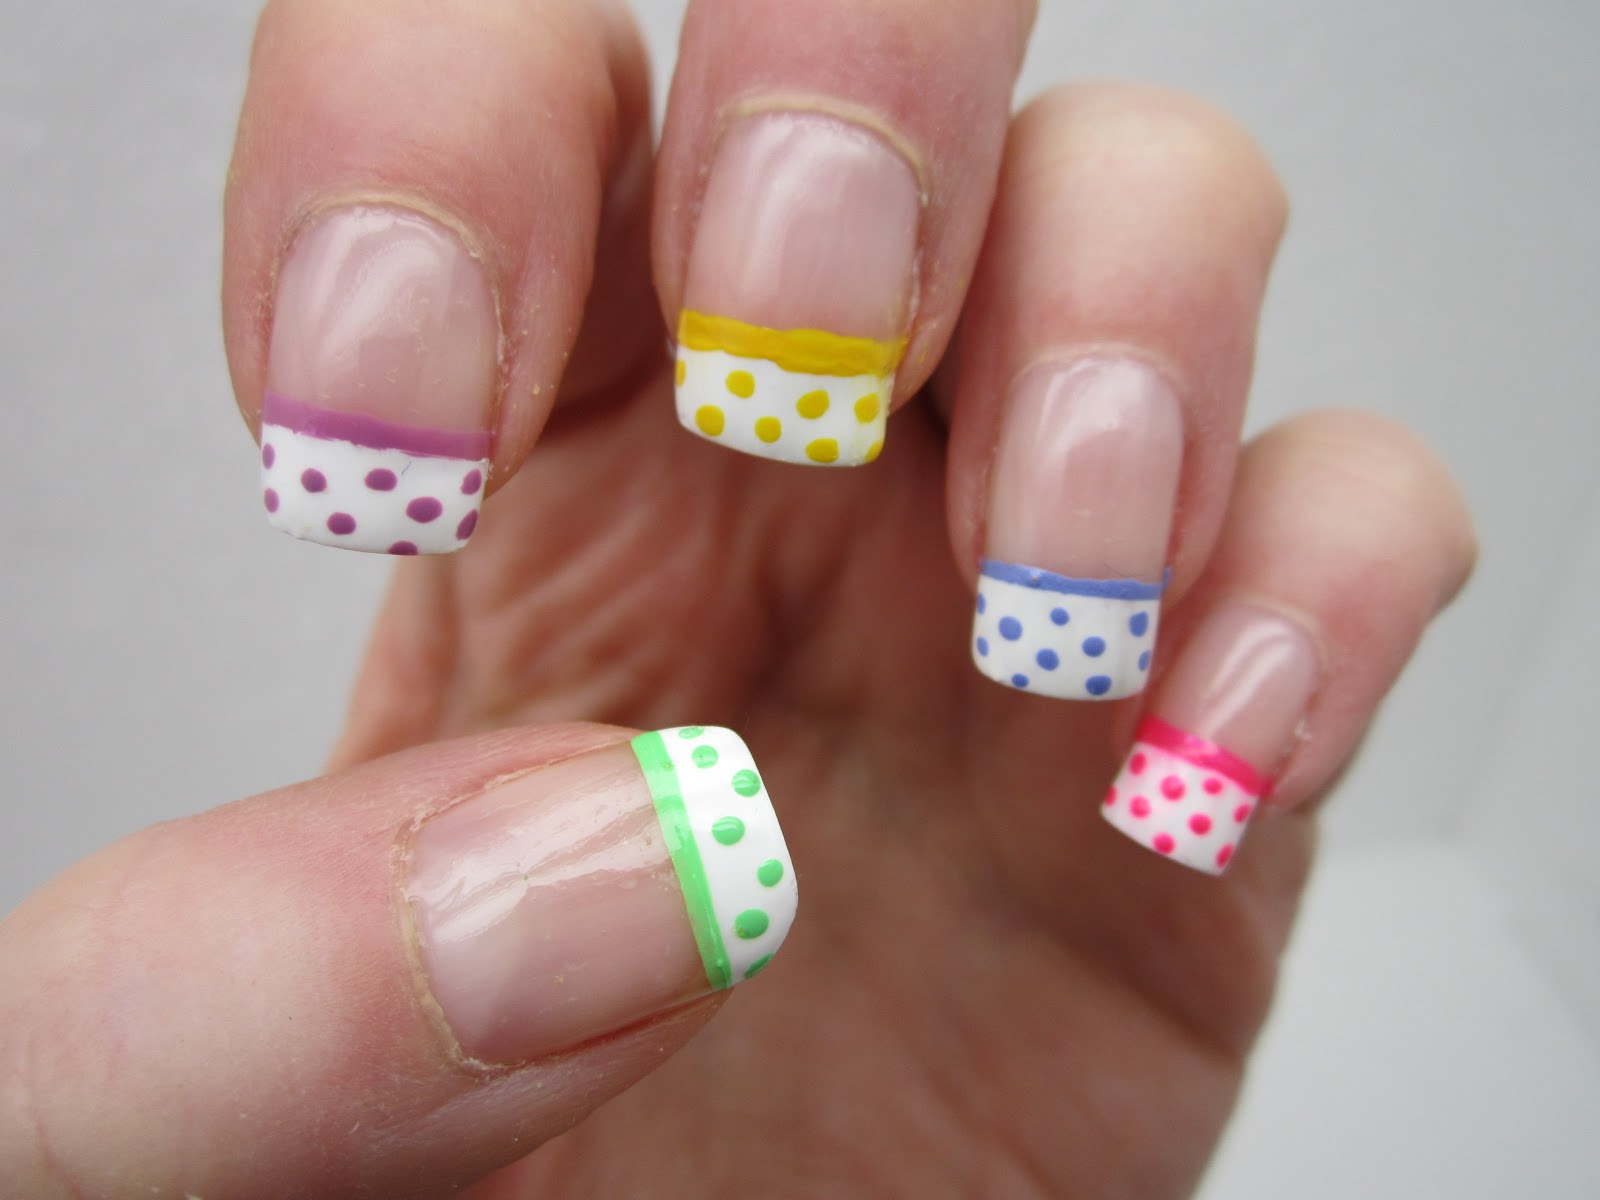 Music note nail design nails gallery music note nail design image prinsesfo Image collections